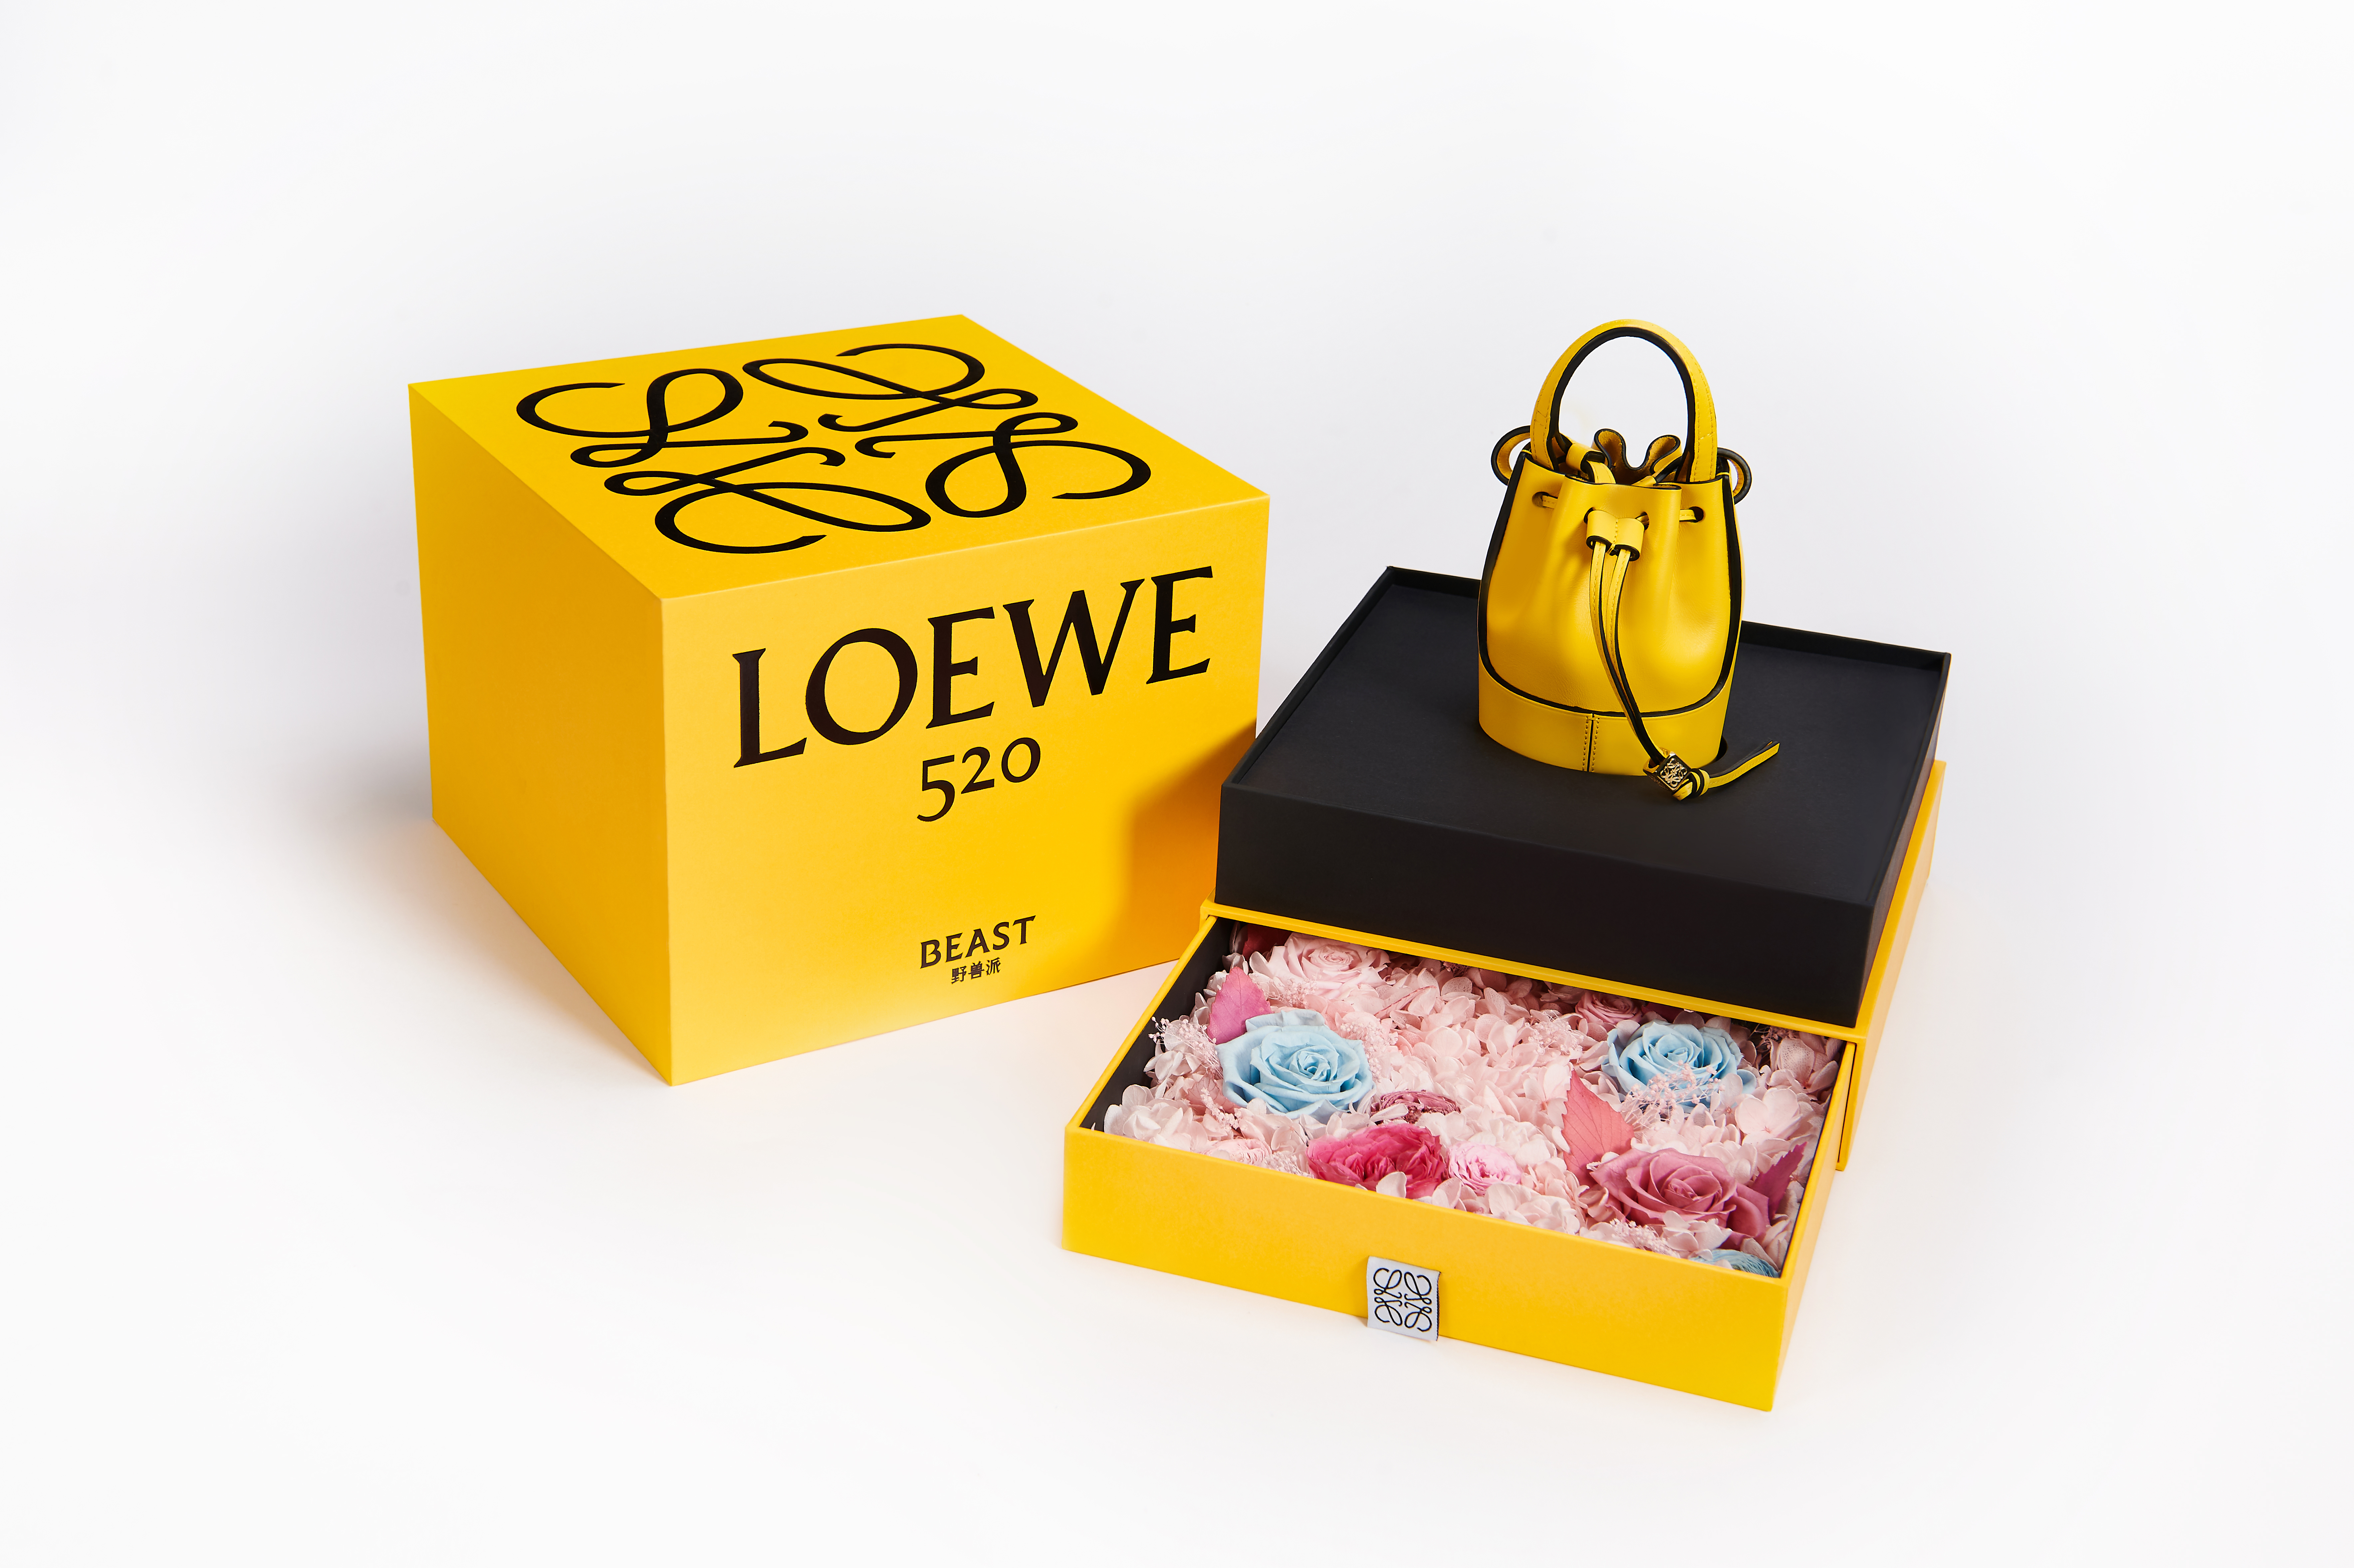 Loewe Nono Balloon made its global debut in China for 520, and comes with a flower gift box designed by The Beast.